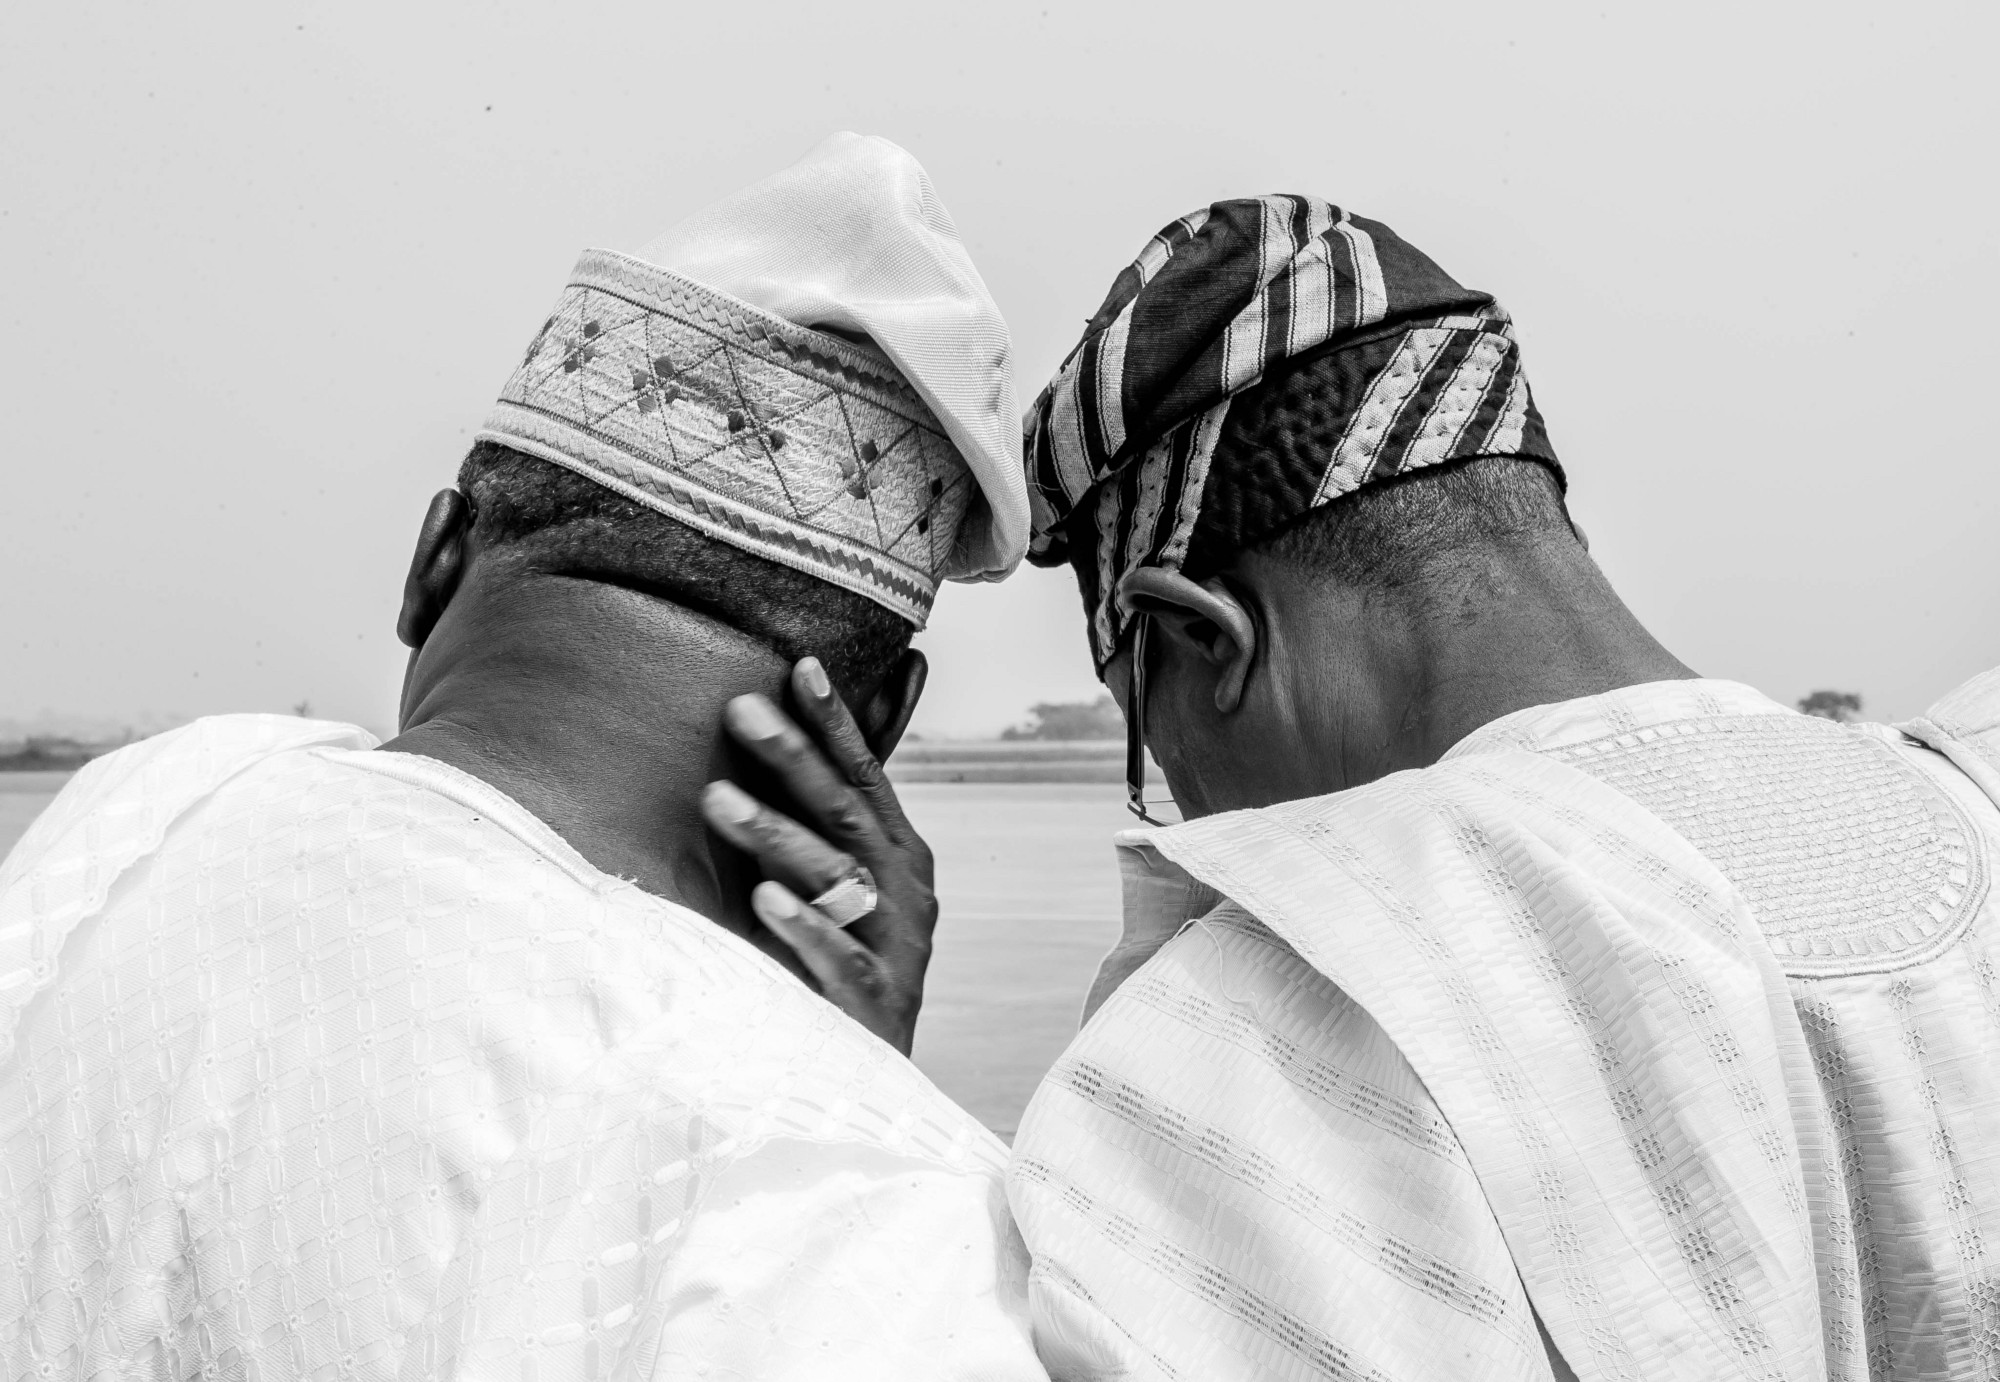 Governor Ajimobi and Governor Aregbesola discuss as they wait for the Vice- President's plane to take-off at the Ibadan Airport. (Photo by: Tolani Alli)